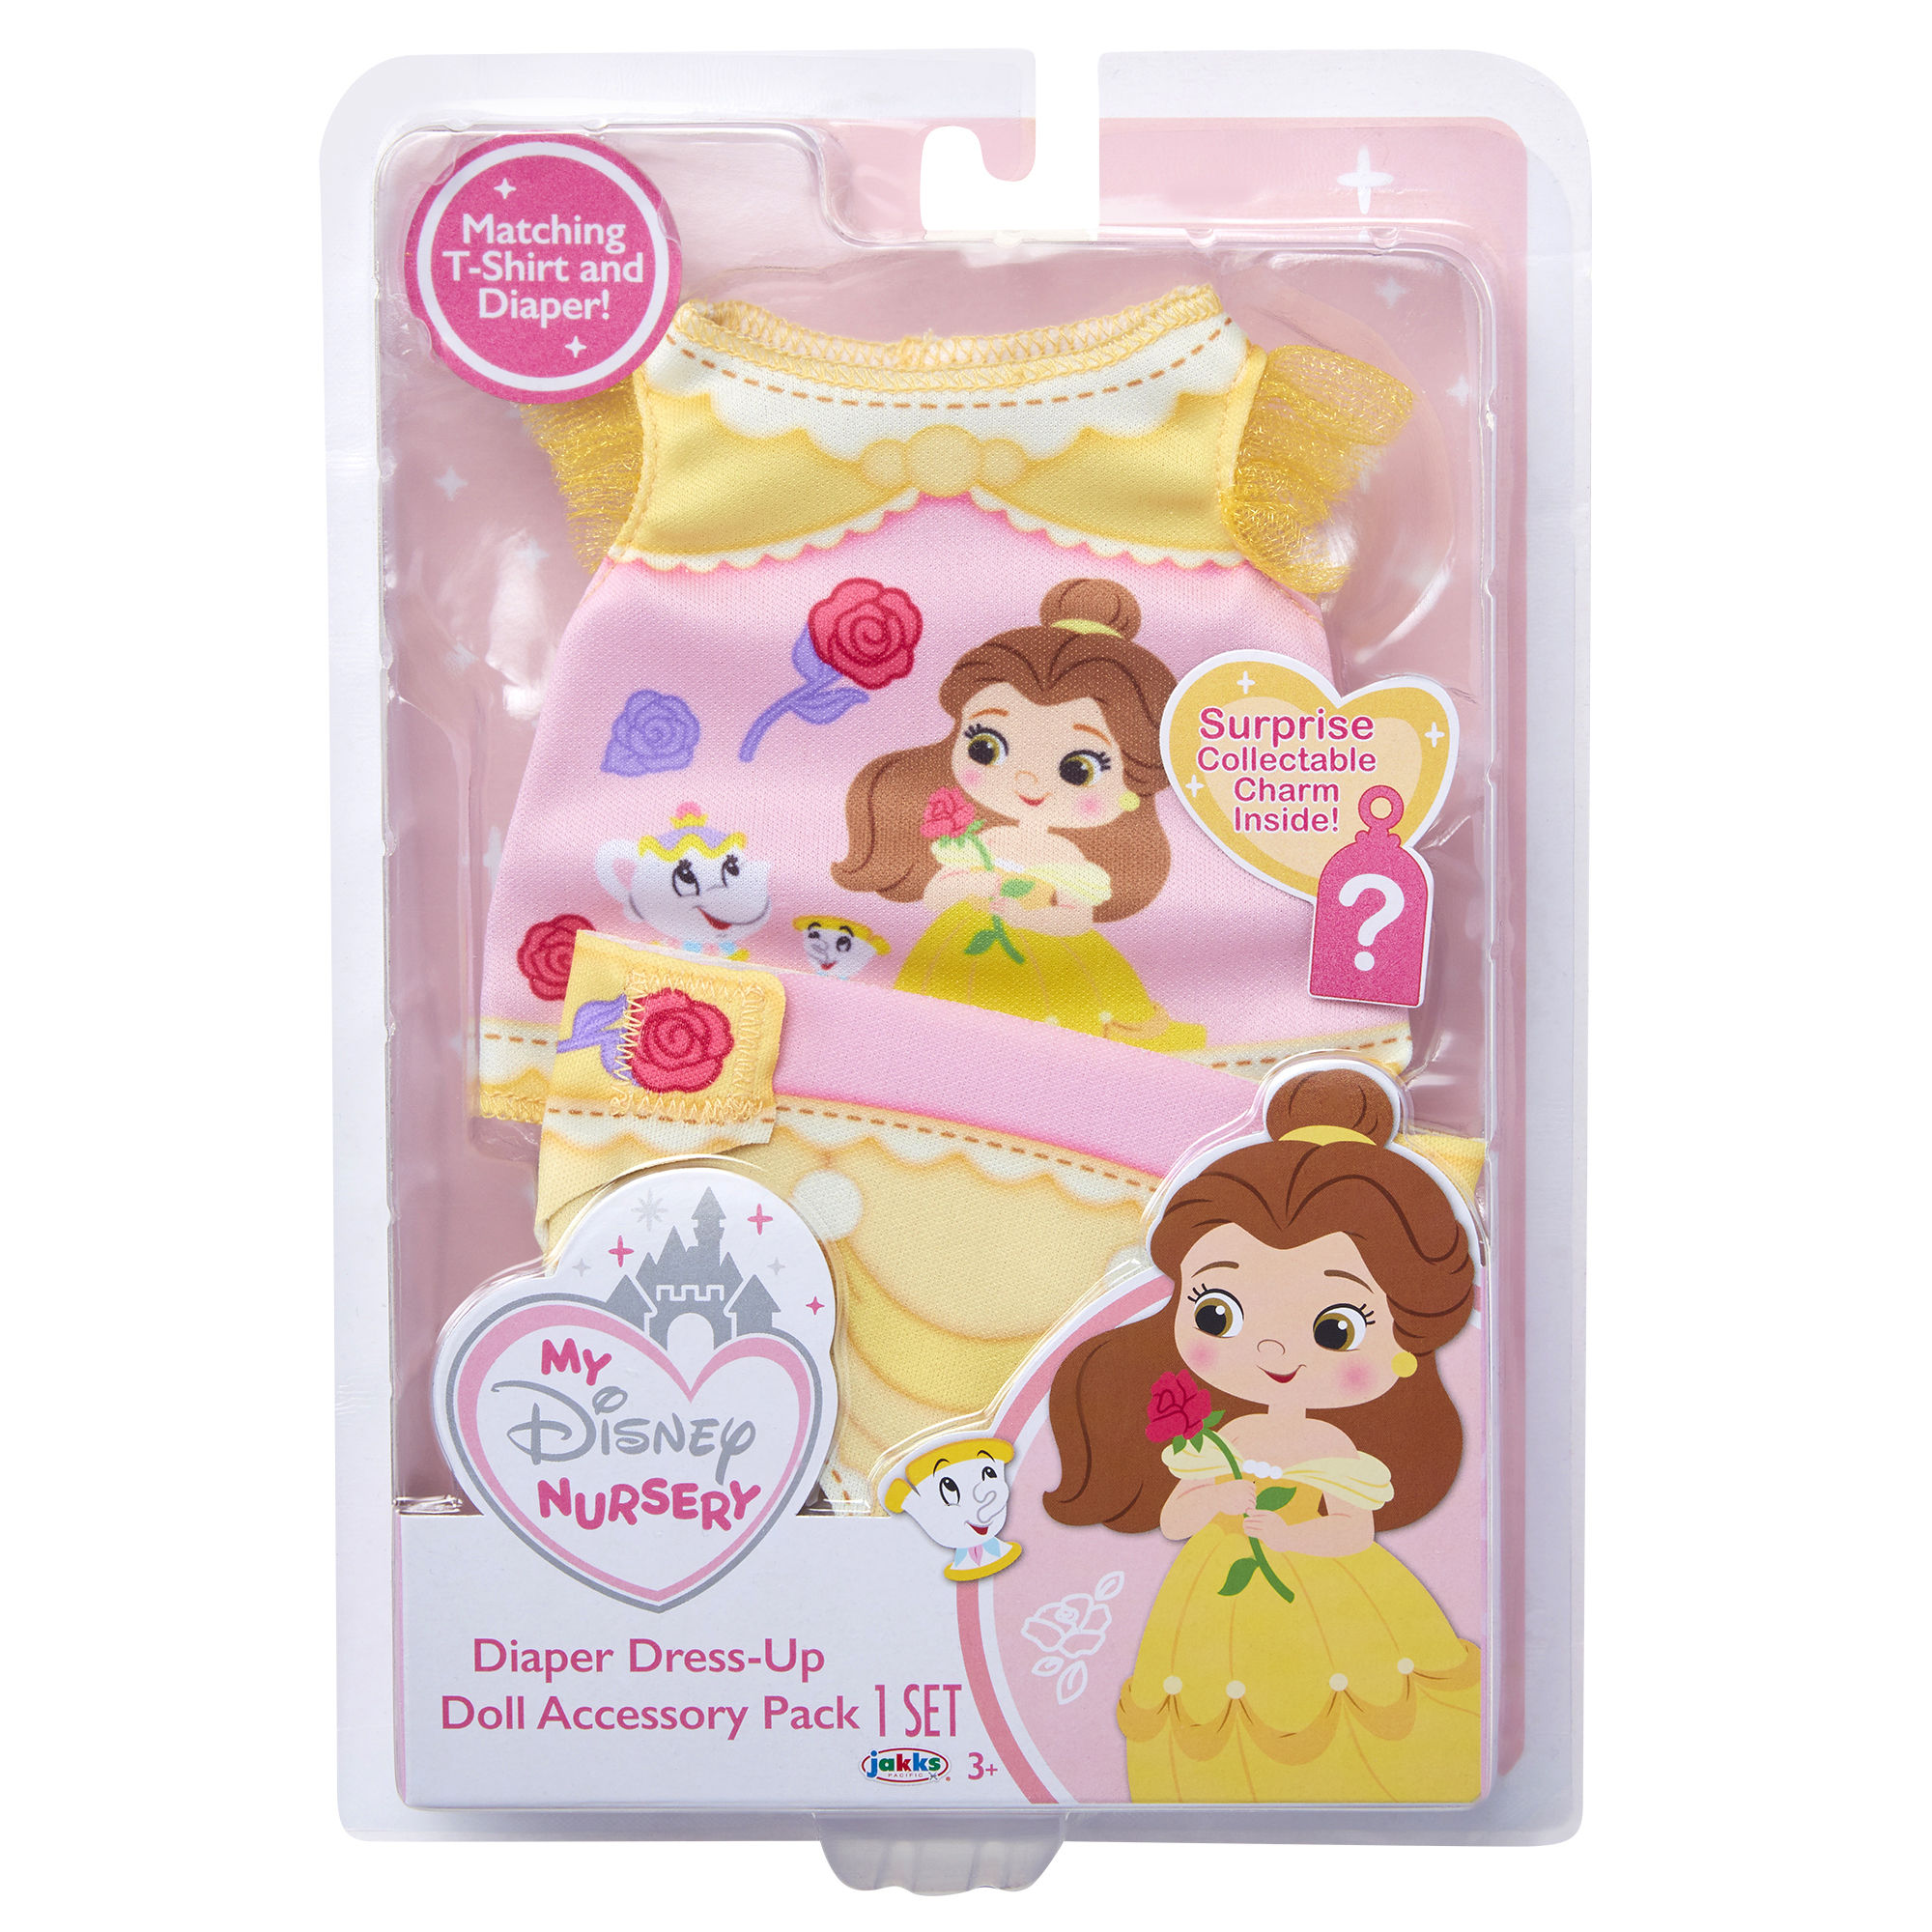 Belle Diaper Dress Up Doll Accessory Pack